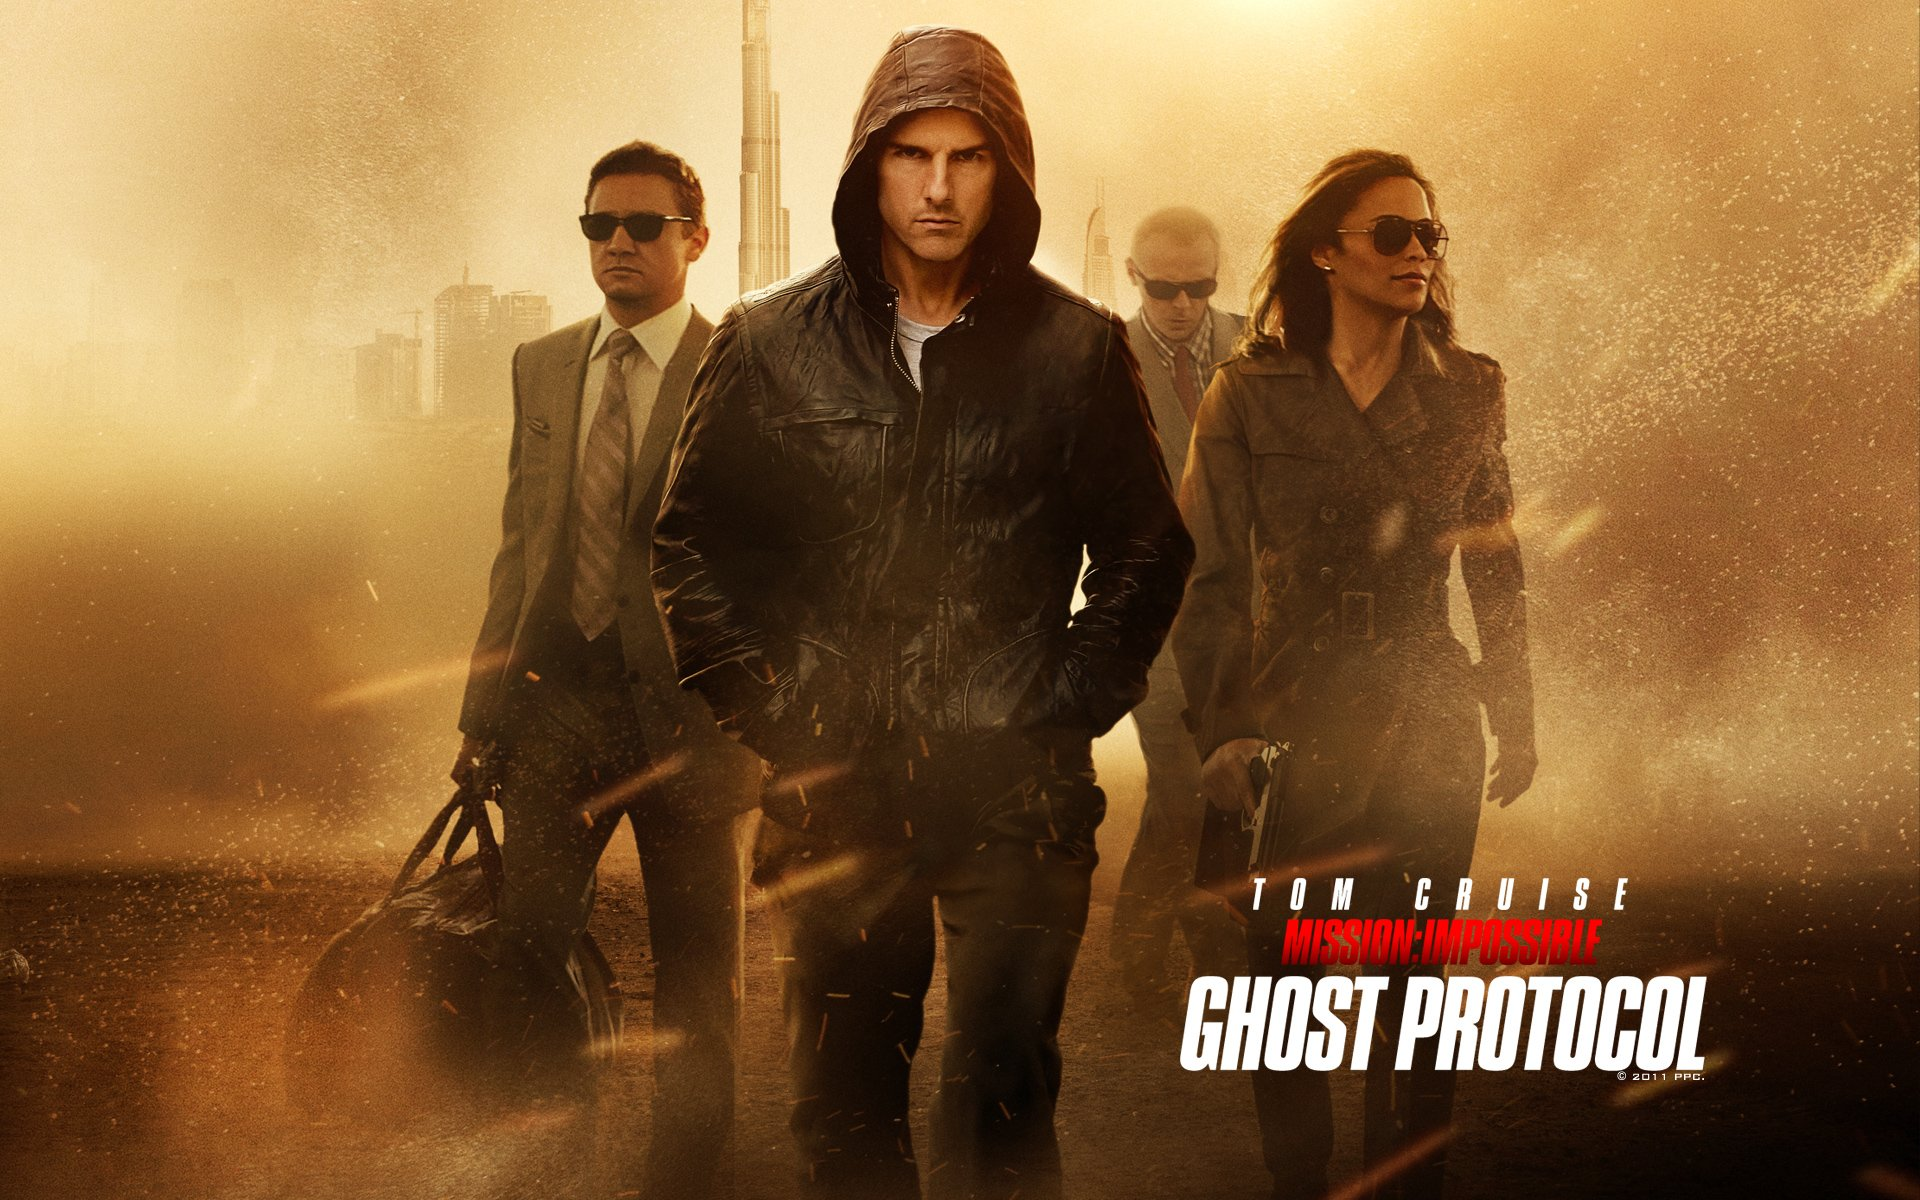 Mission impossible ghost protocol hd wallpaper - Mission impossible wallpaper ...